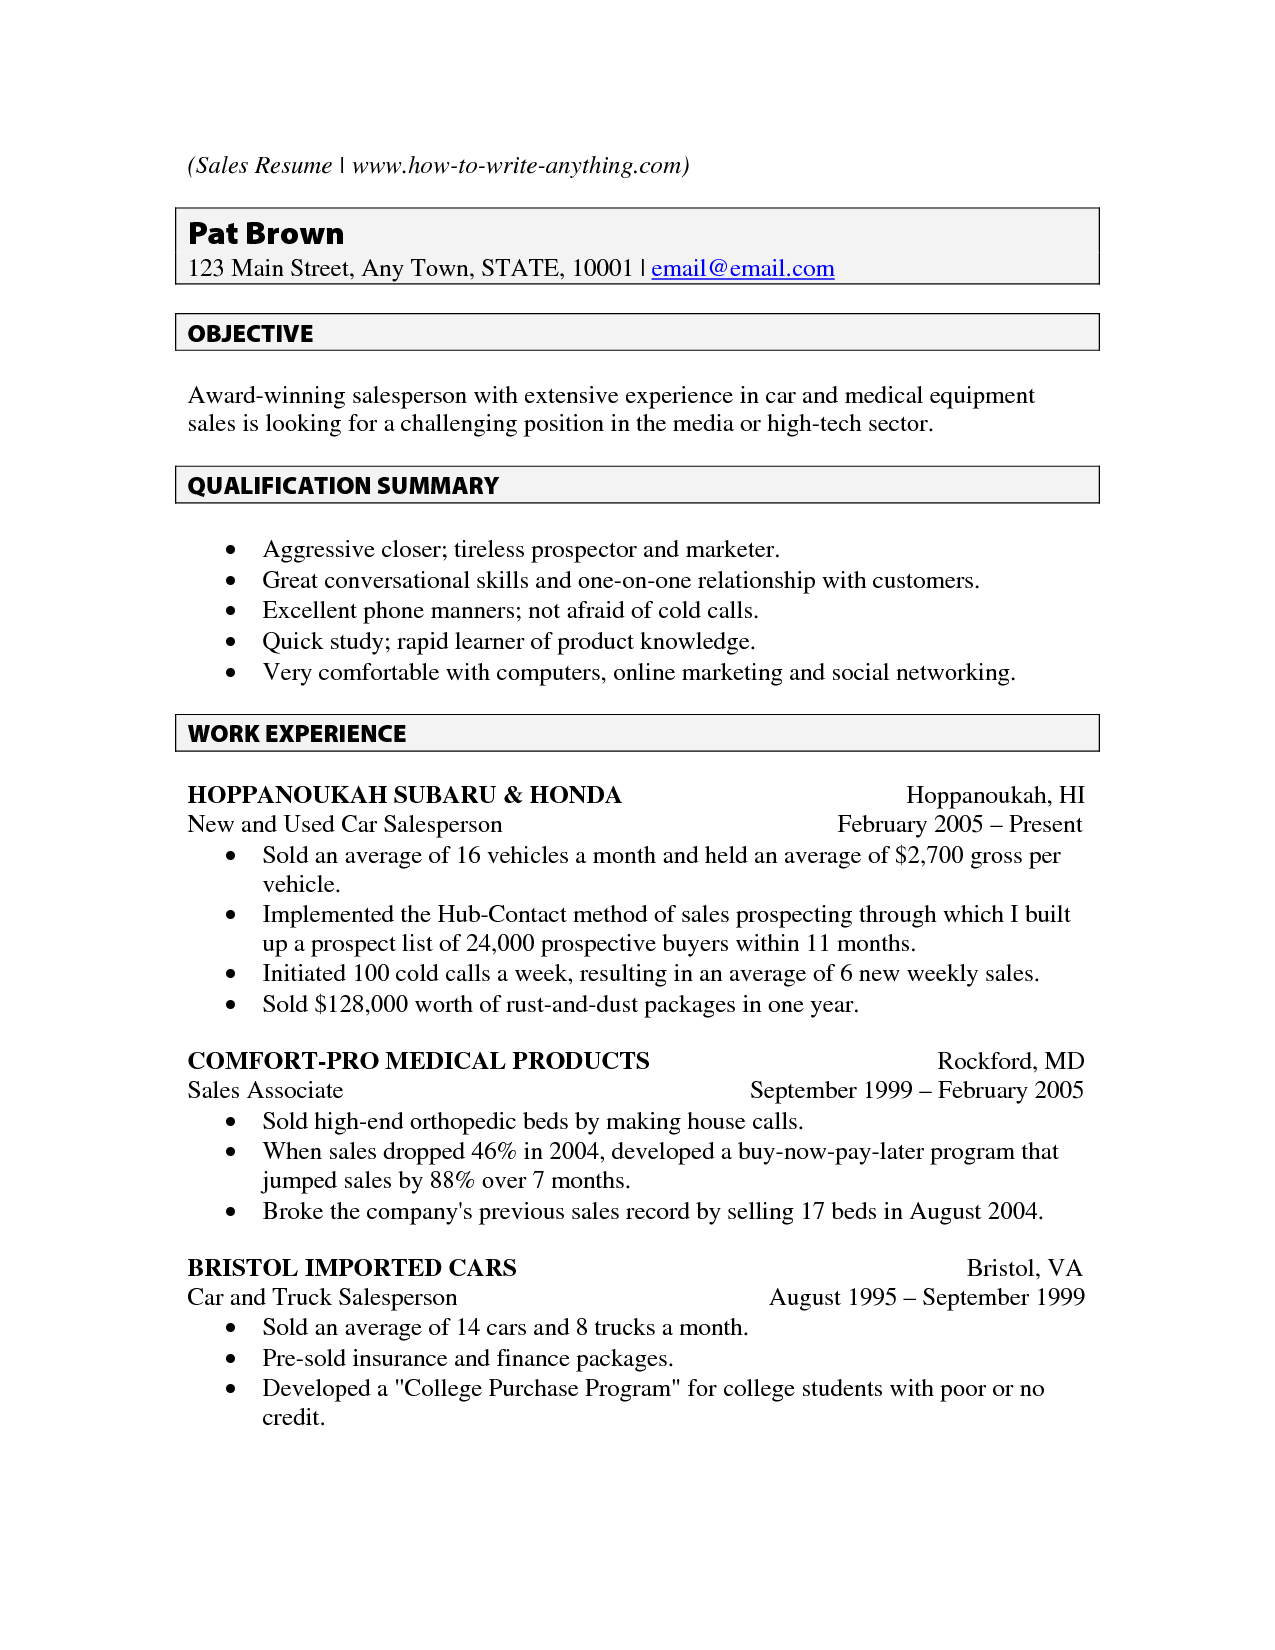 Programmer Resume Sample | resume | Pinterest | Resume examples